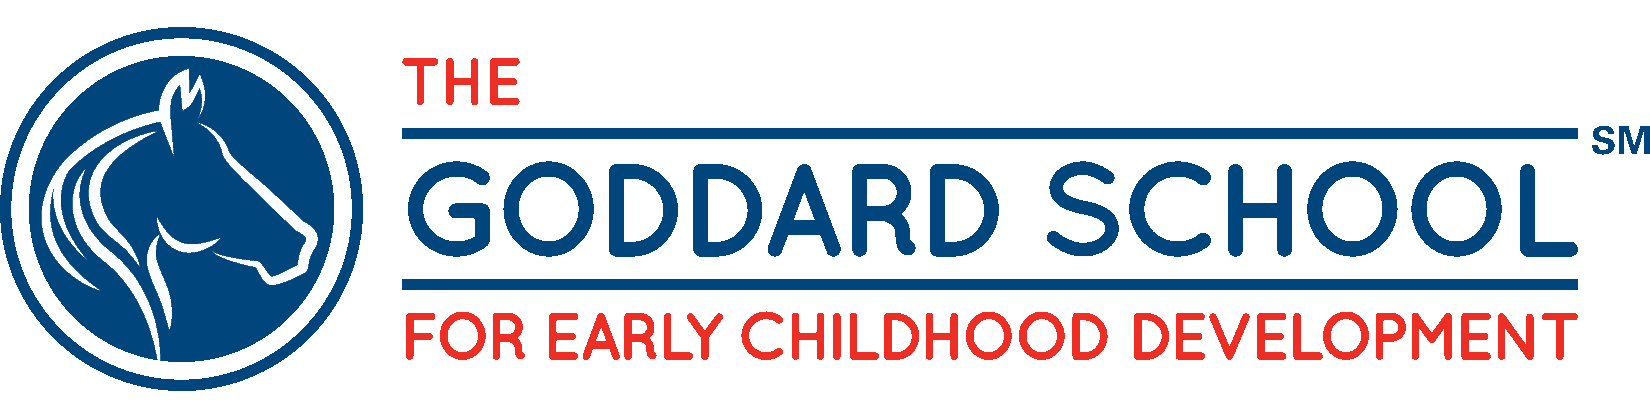 Logo: The Goddard School